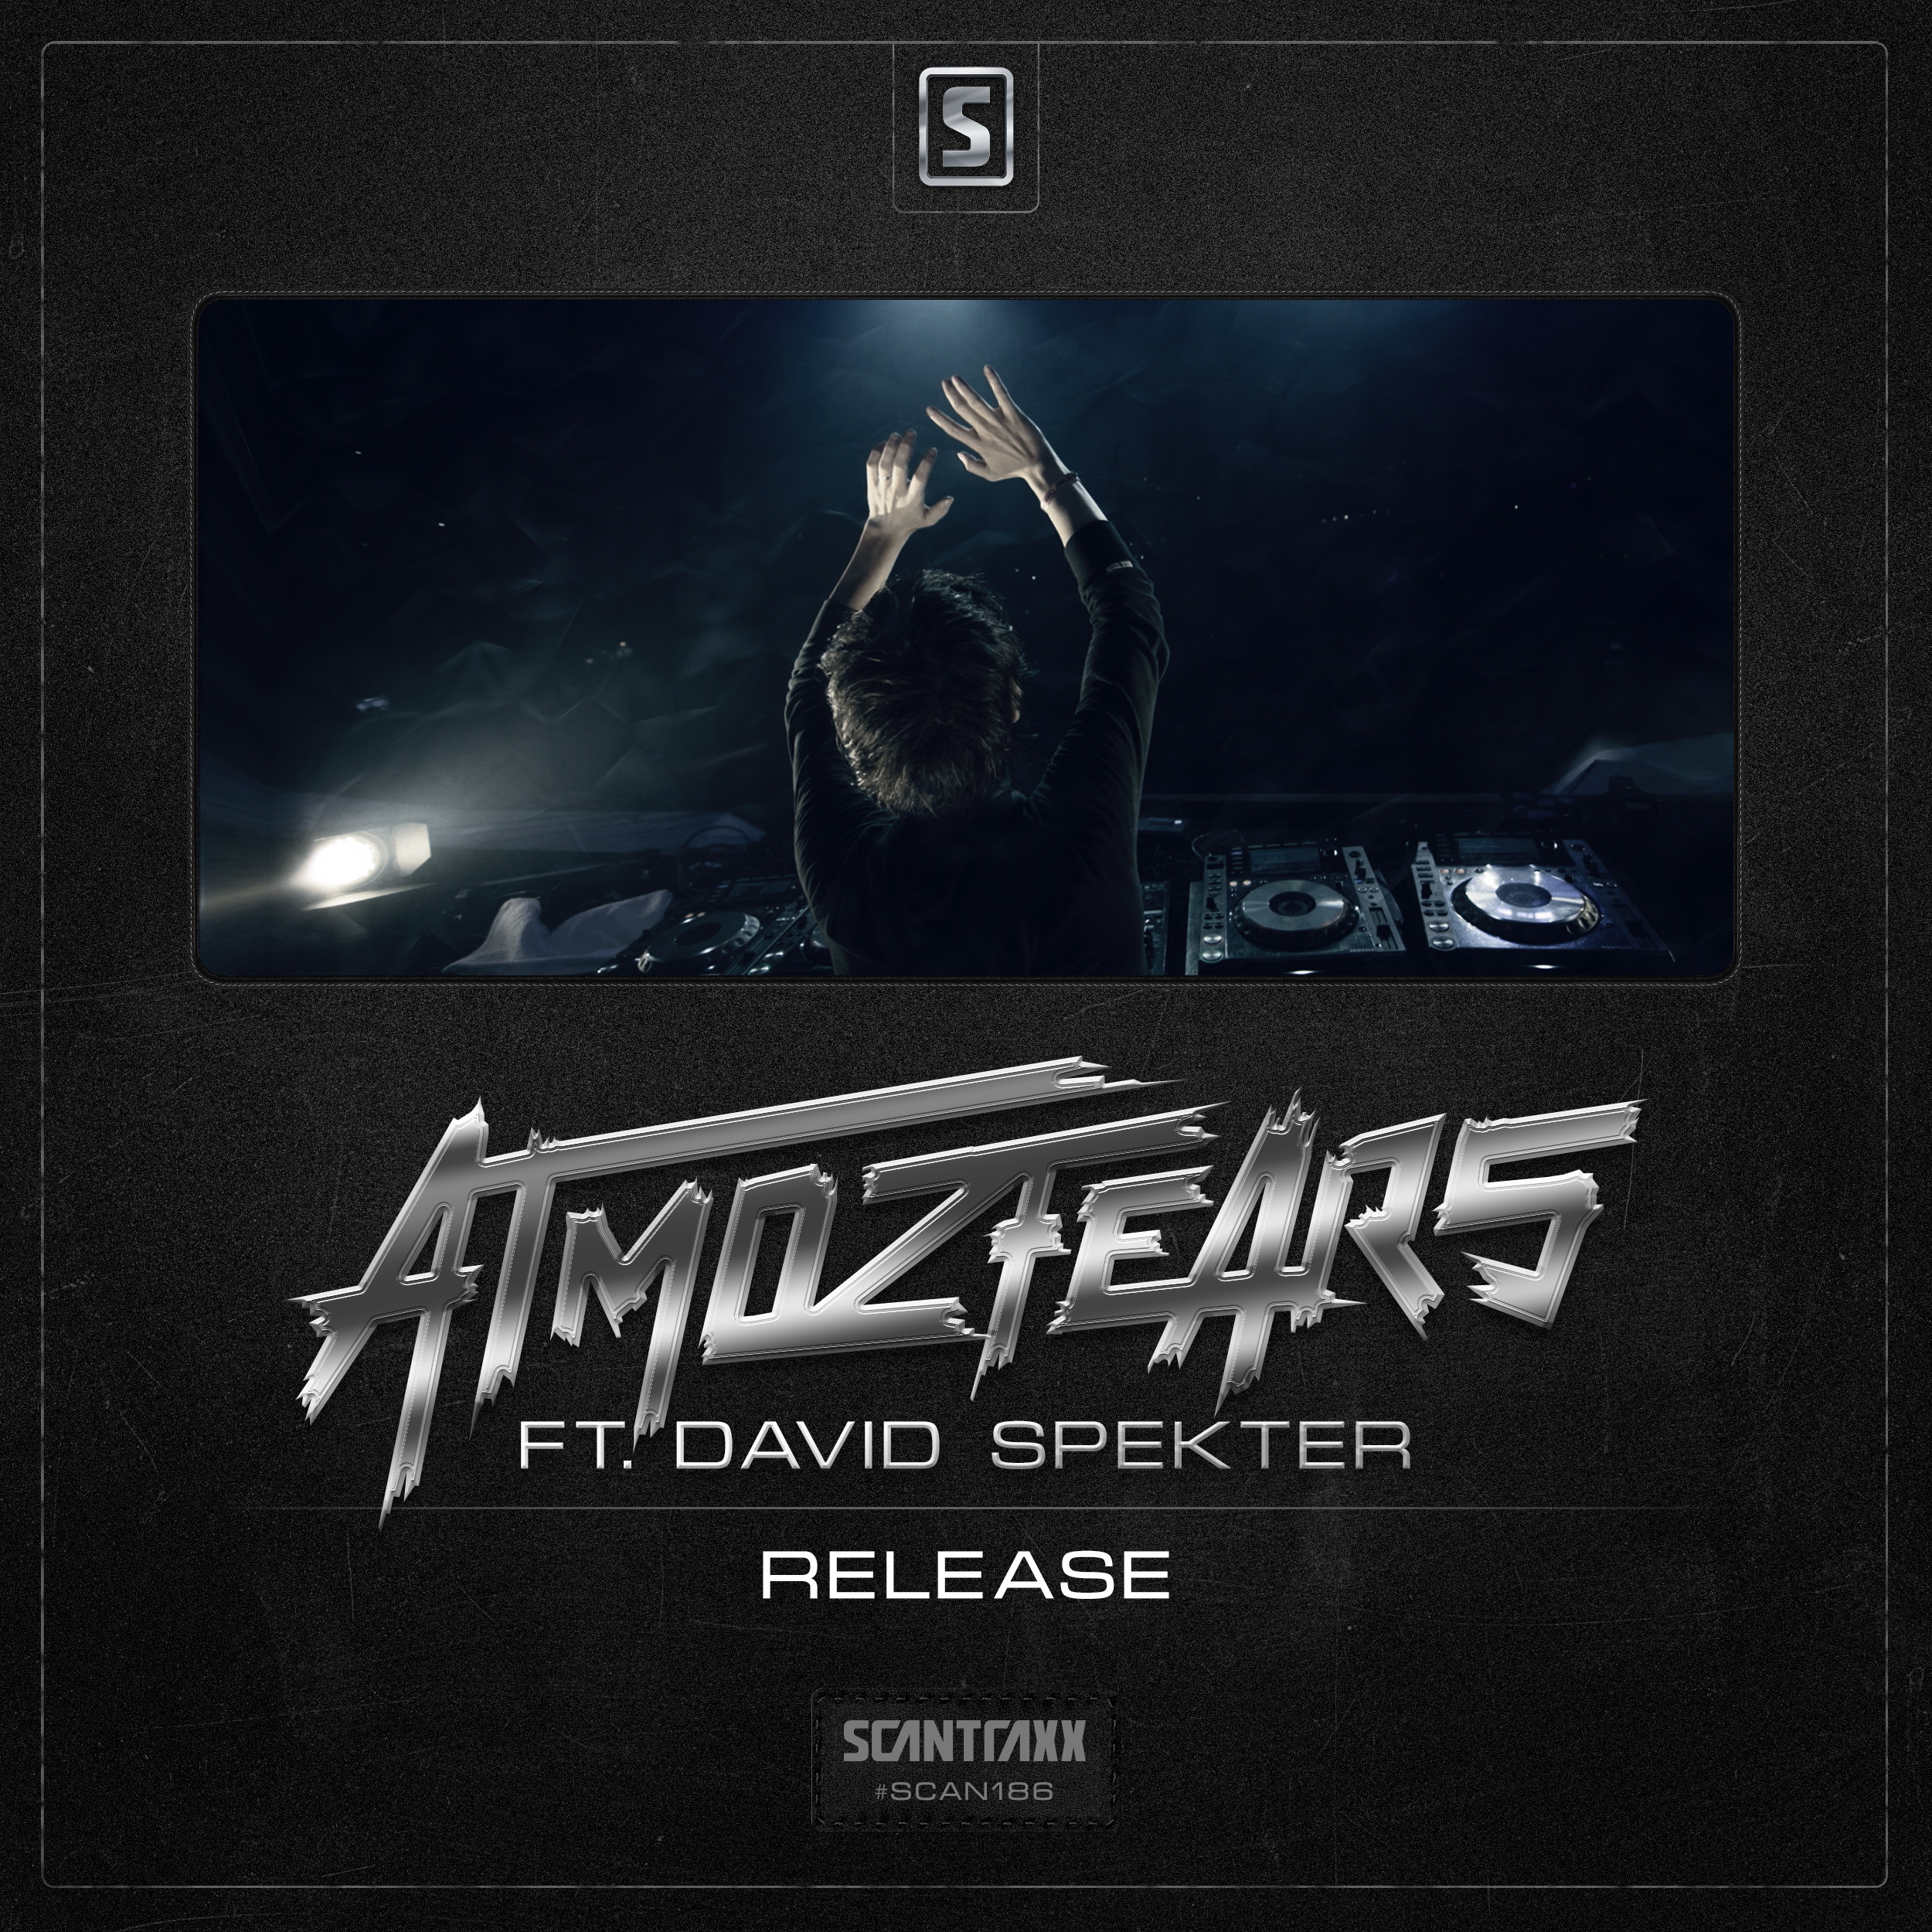 Atmozfears ft. David Spekter - Release [SCANTRAXX RECORDZ] SCANTRAXX186